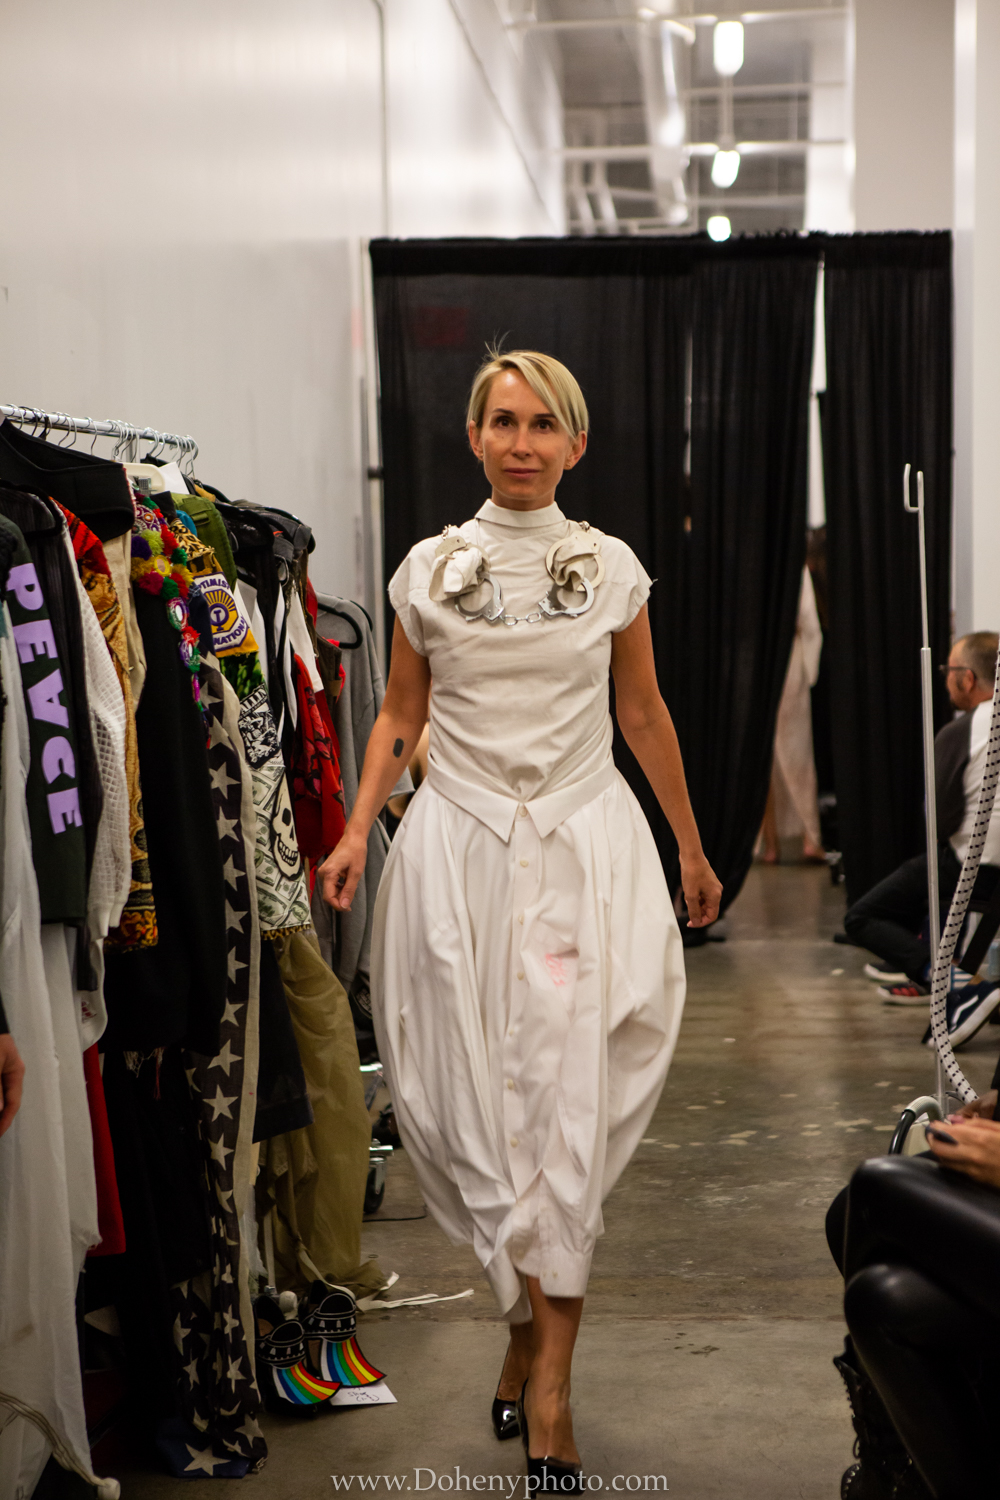 bohemian_society_LA_Fashion_week_Dohenyphoto-3736.jpg